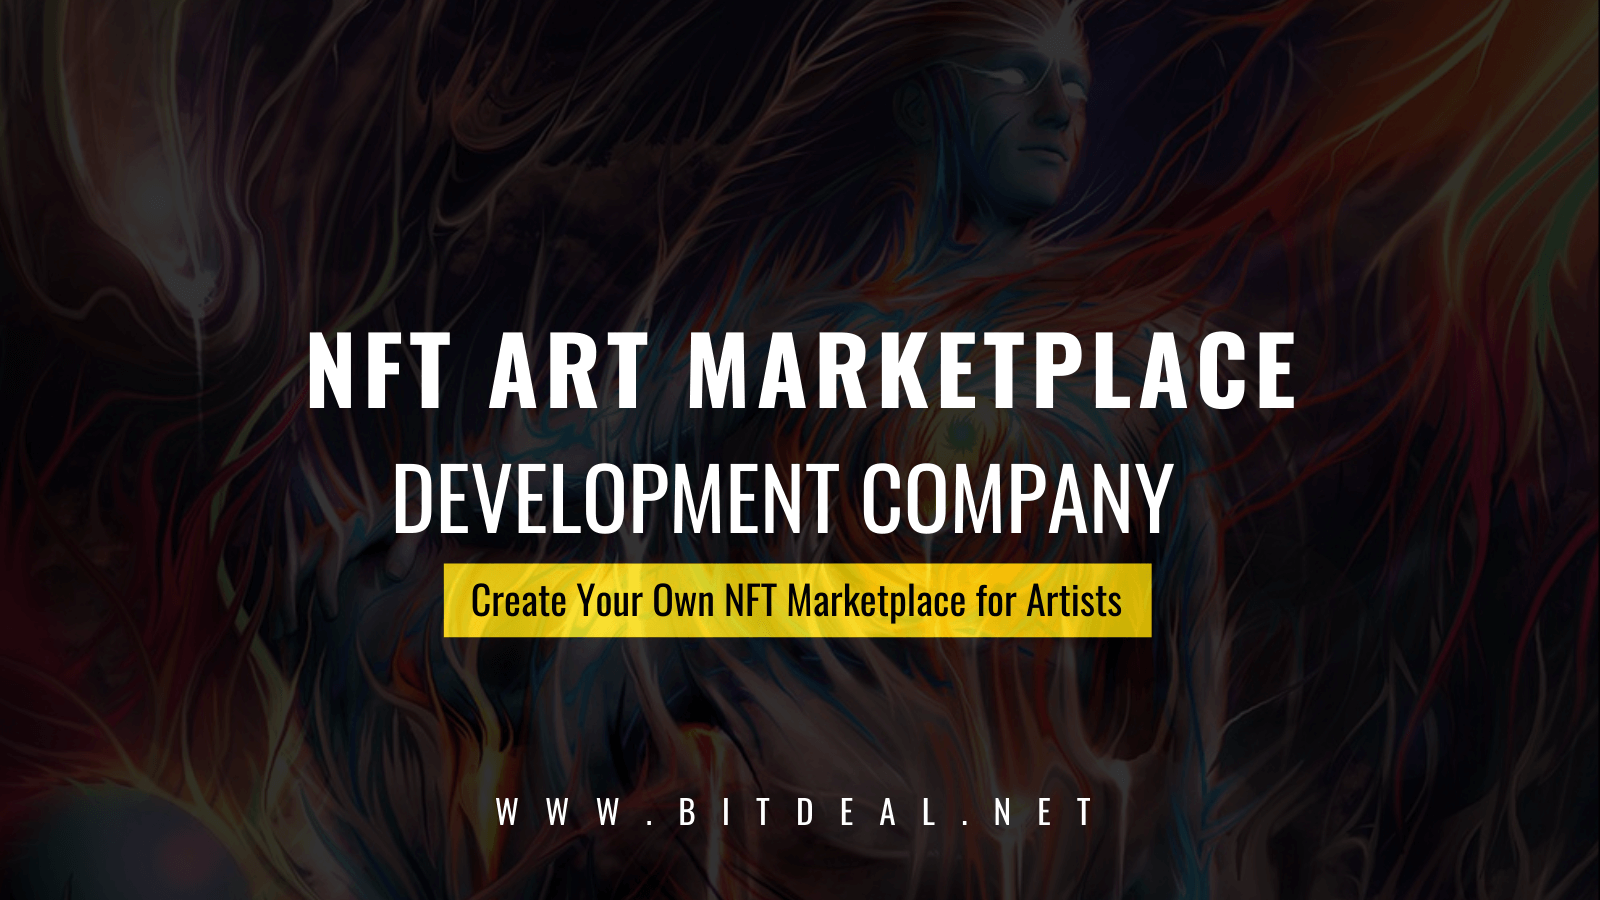 Start Your Own Million-dollar Business By Launching NFT Marketplace For Arts like OpenSea, Rarible